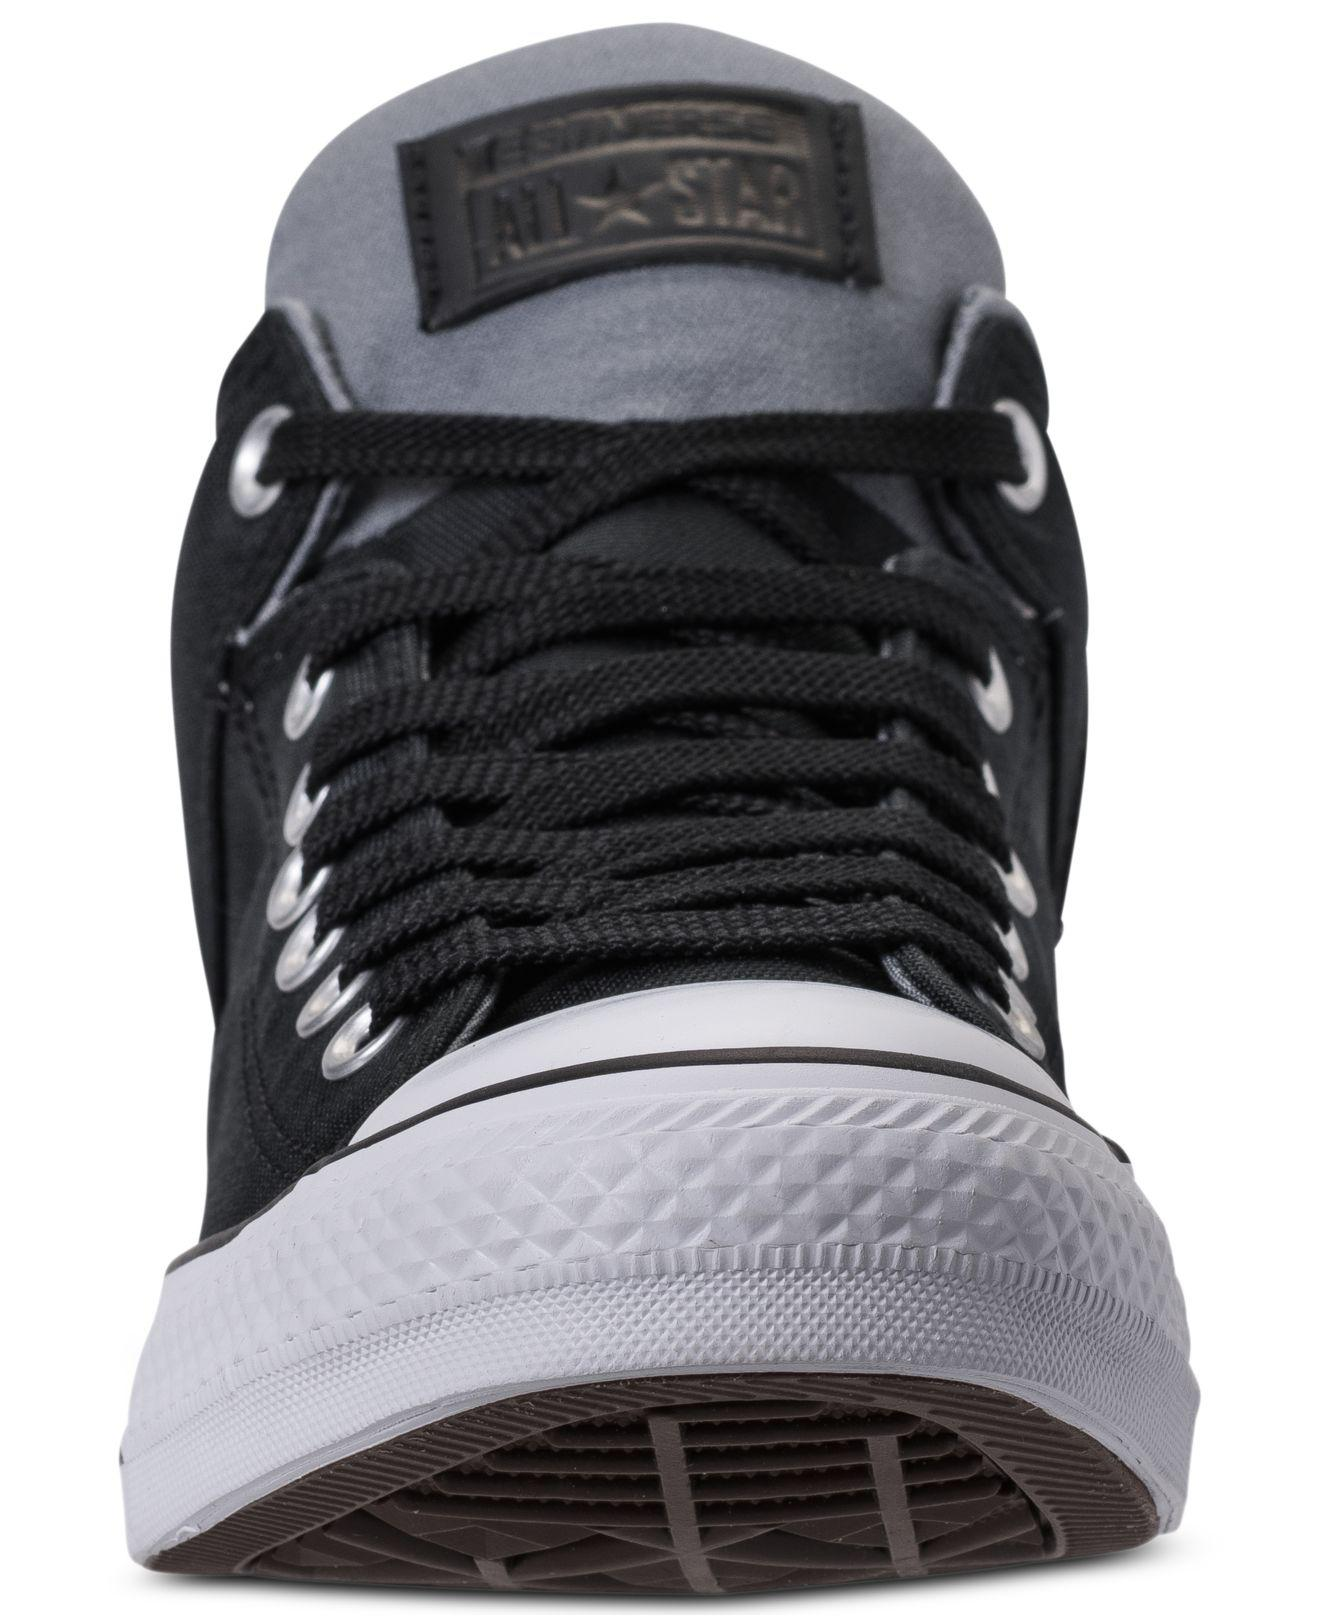 76a740db4664 Lyst - Converse Men s Chuck Taylor All Star High Street Casual ...